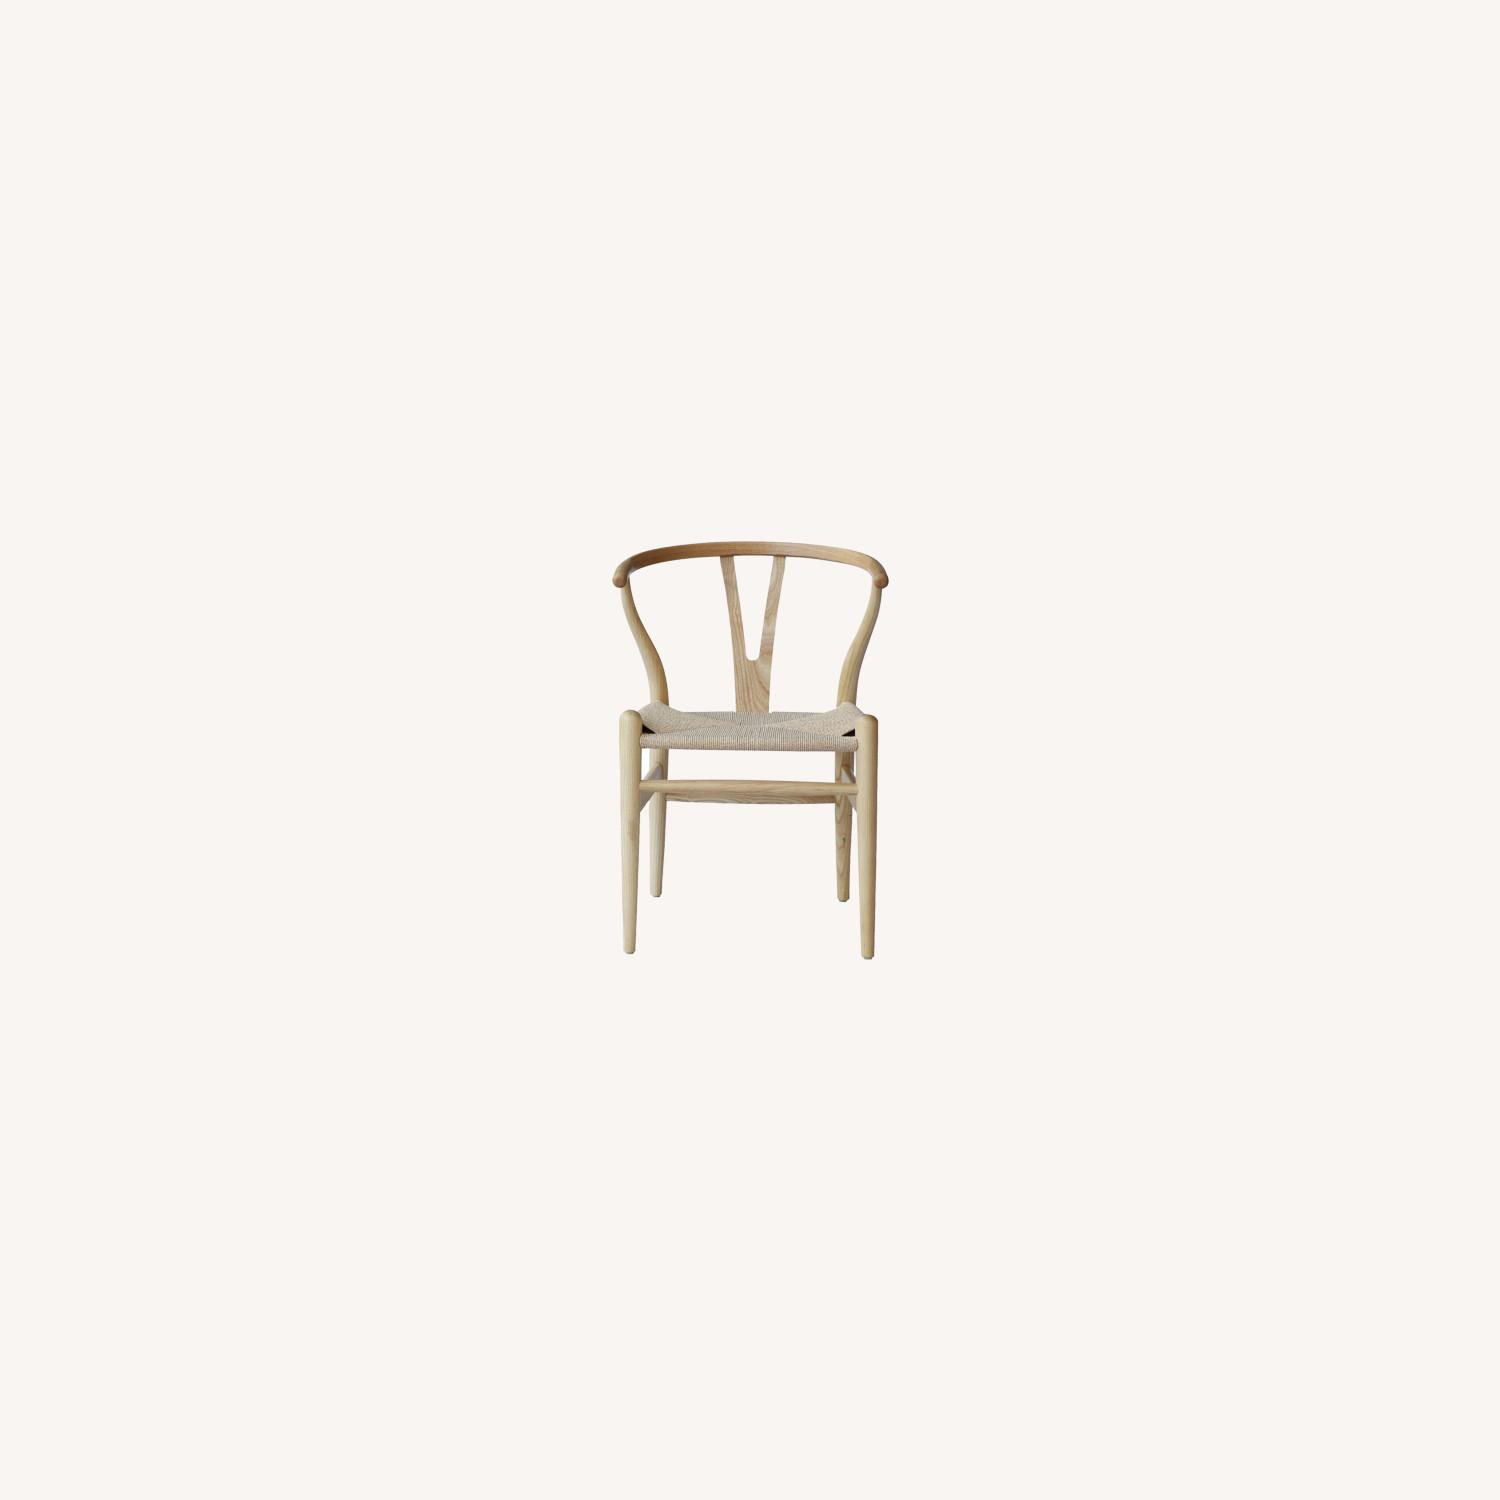 Dining Chair In Natural Frame & Natural Hemp Seat - image-8